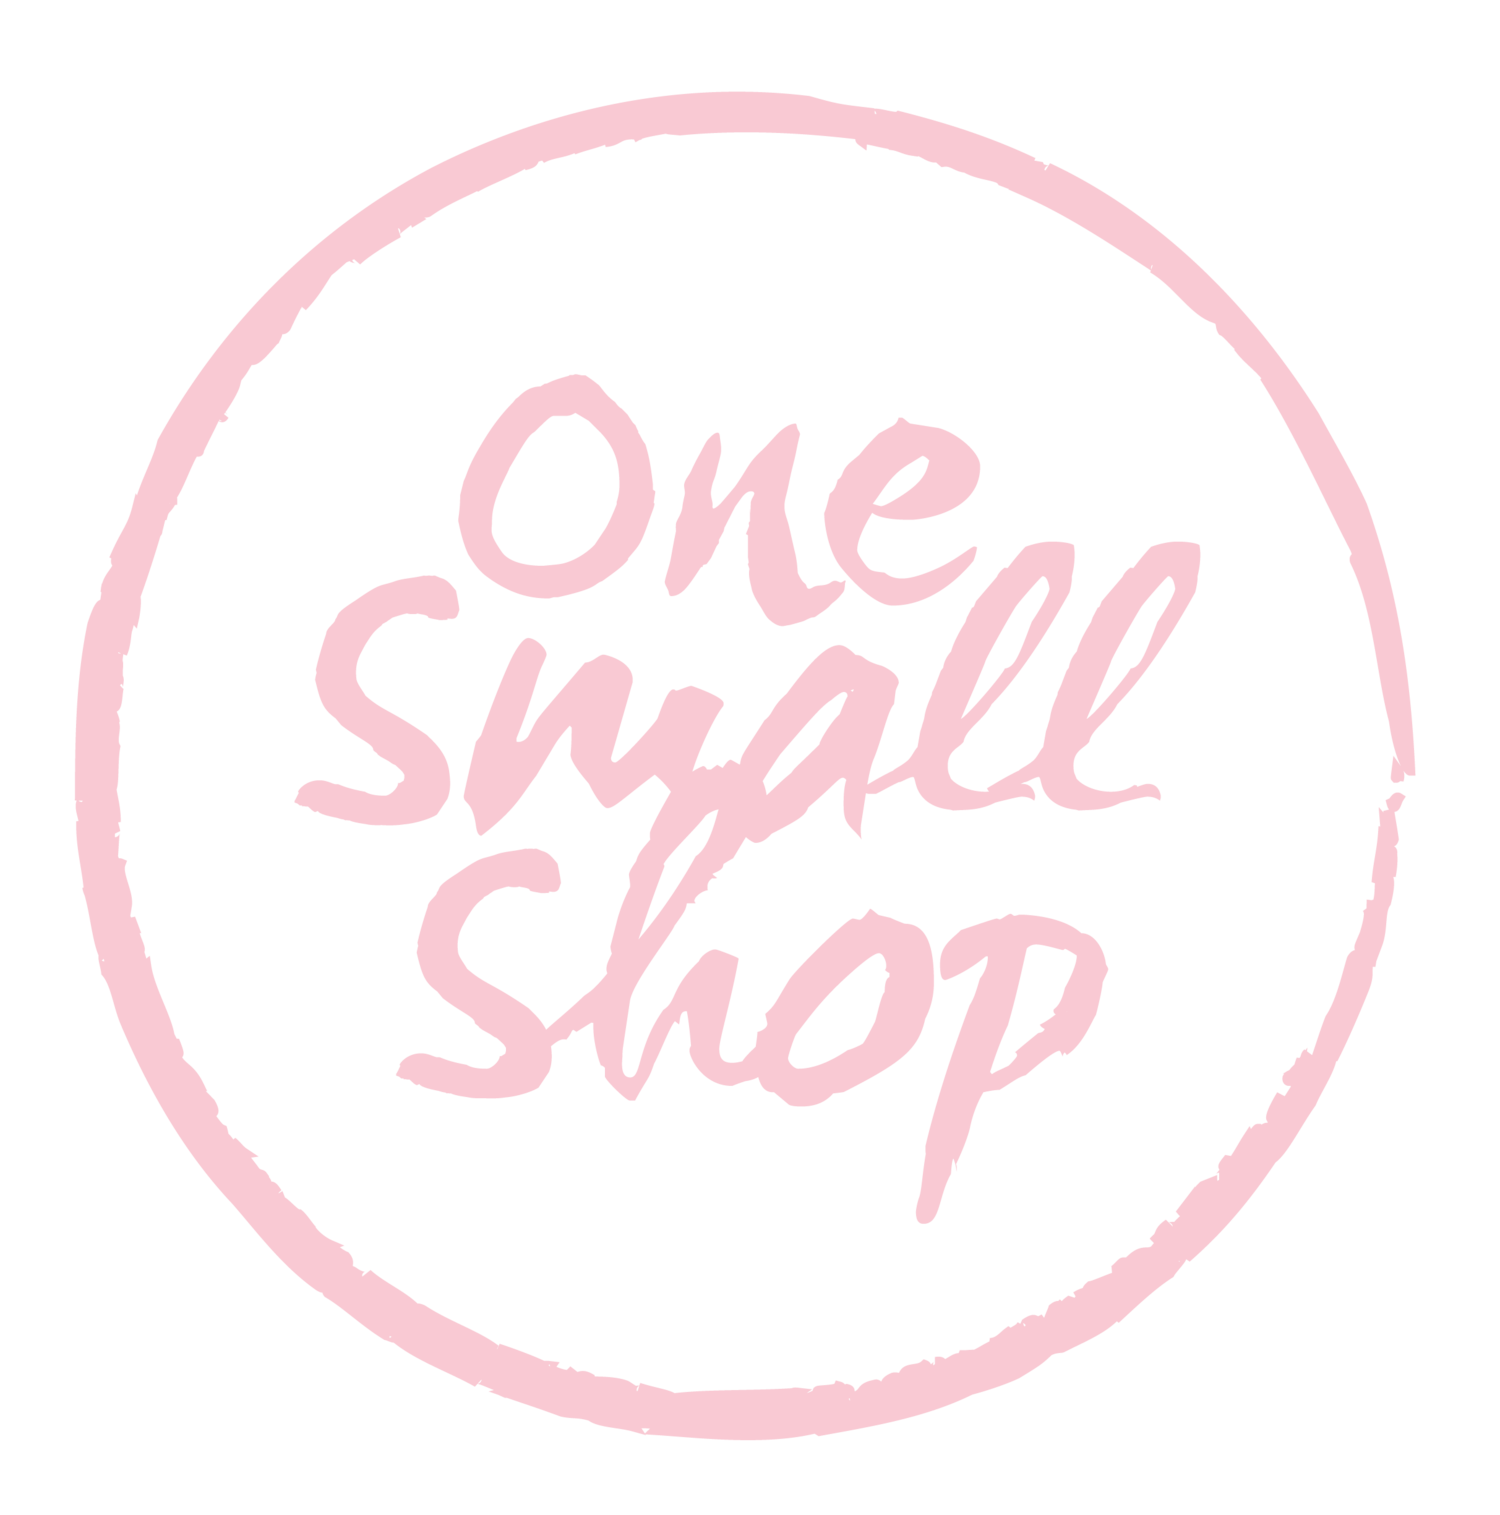 One Small Shop